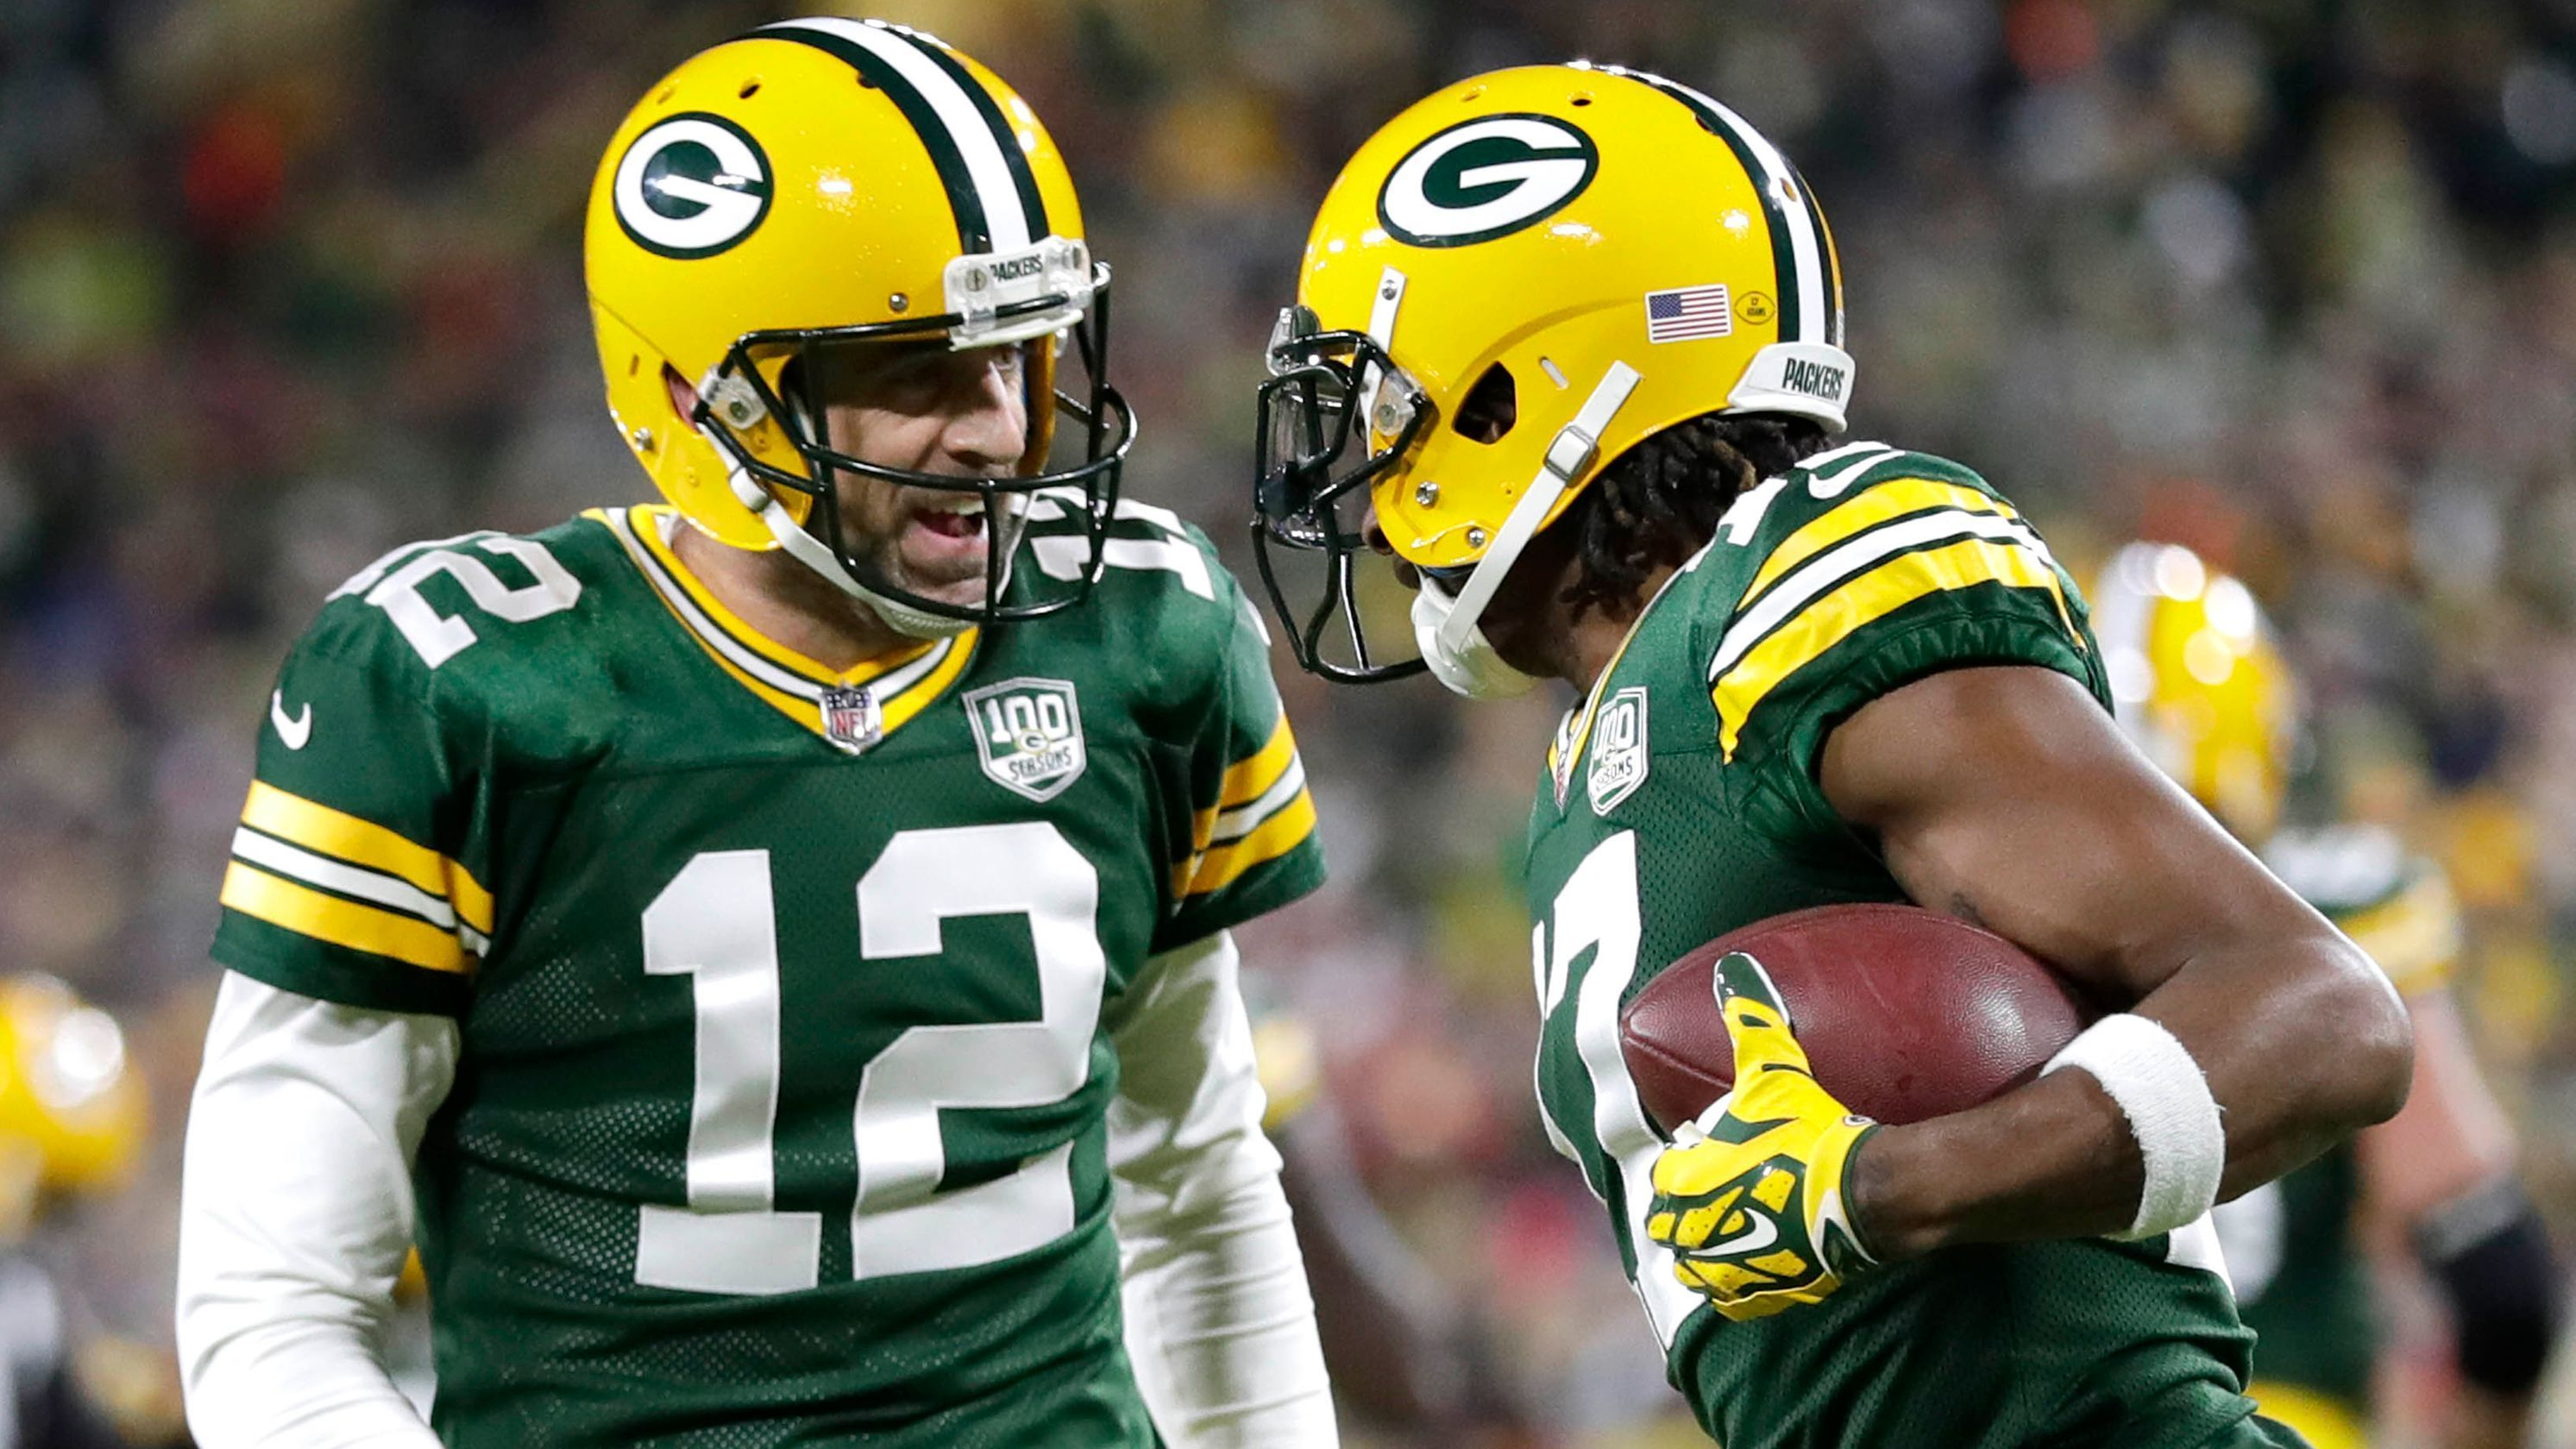 Aaron Rodgers Green Bay Packers Detroitsporotsfrenzy Com Aaron Rodgers Green Bay Packers Detroitsporotsfre Aa Rodgers Green Bay Nfc North Green Bay